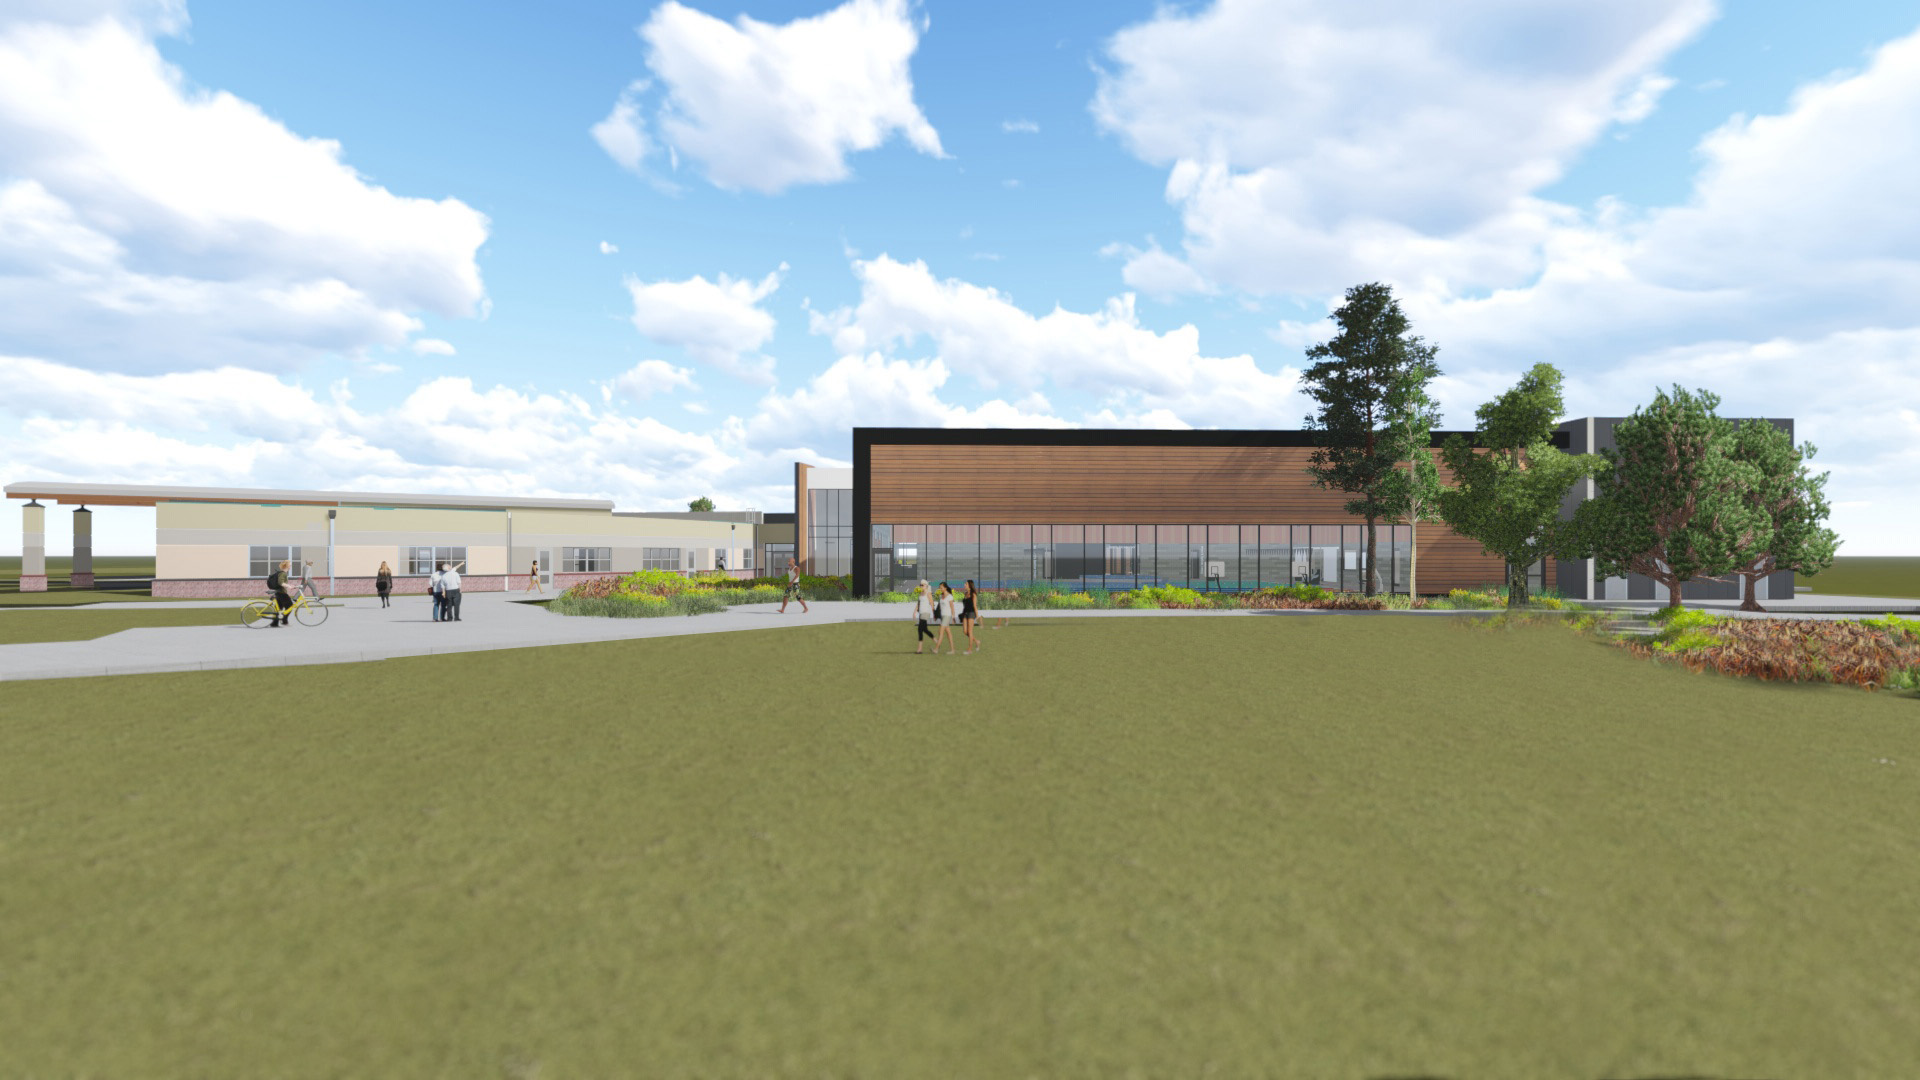 Concept image of the exterior of the Larkspur Community Center expansion at the Bend Senior Center.